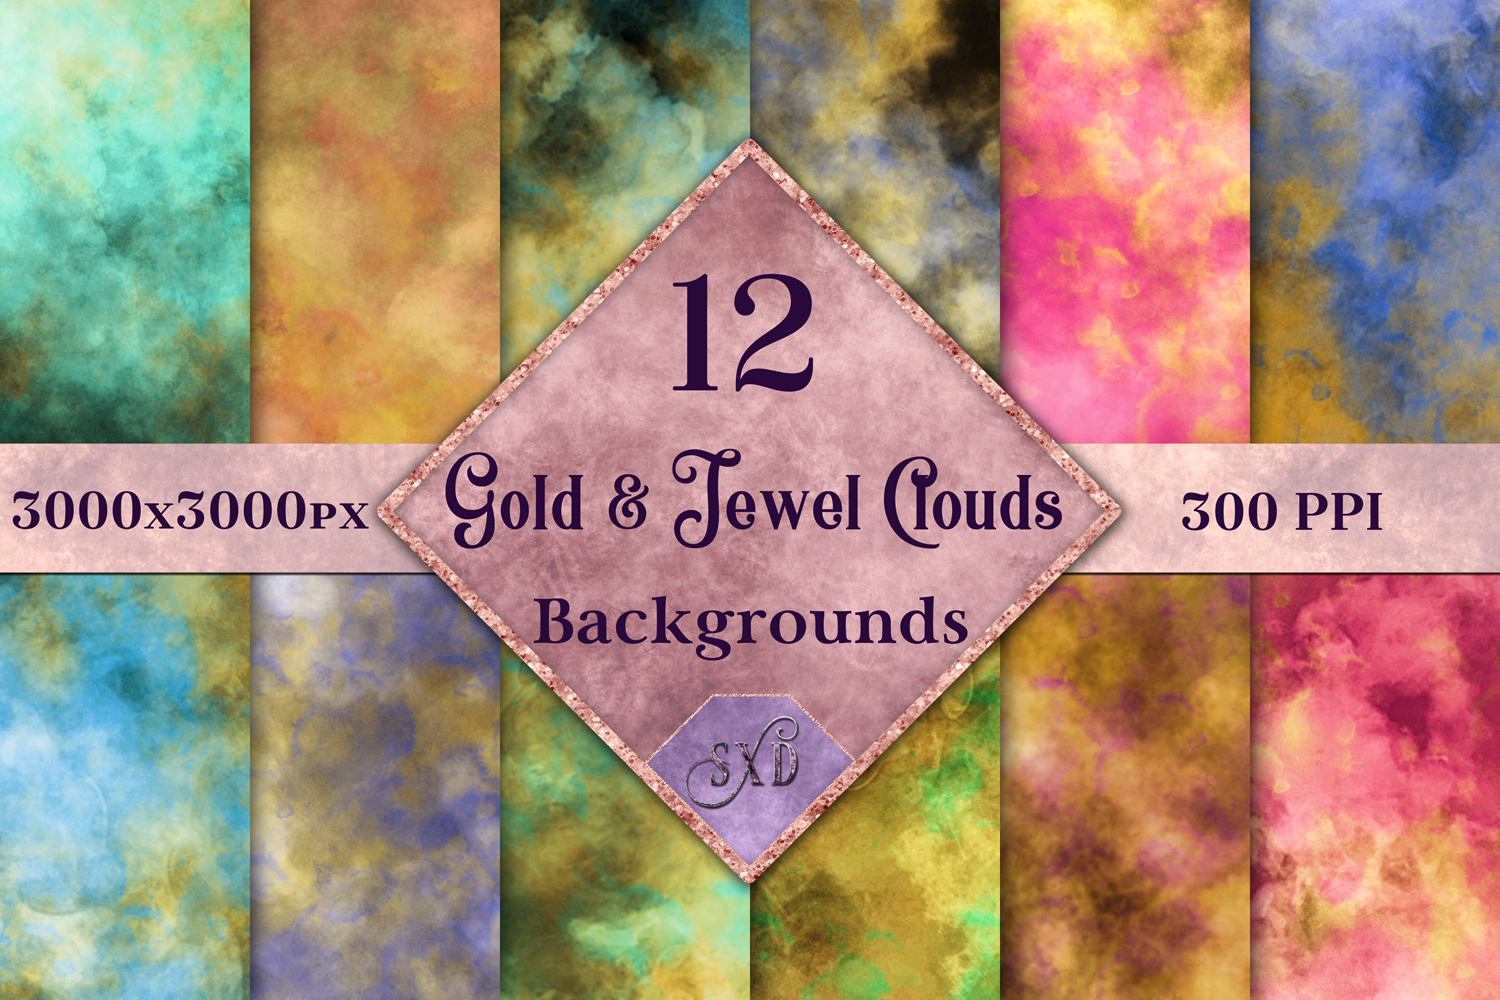 Gold and Jewel Colour Clouds Backgrounds - 12 Image Set example image 1